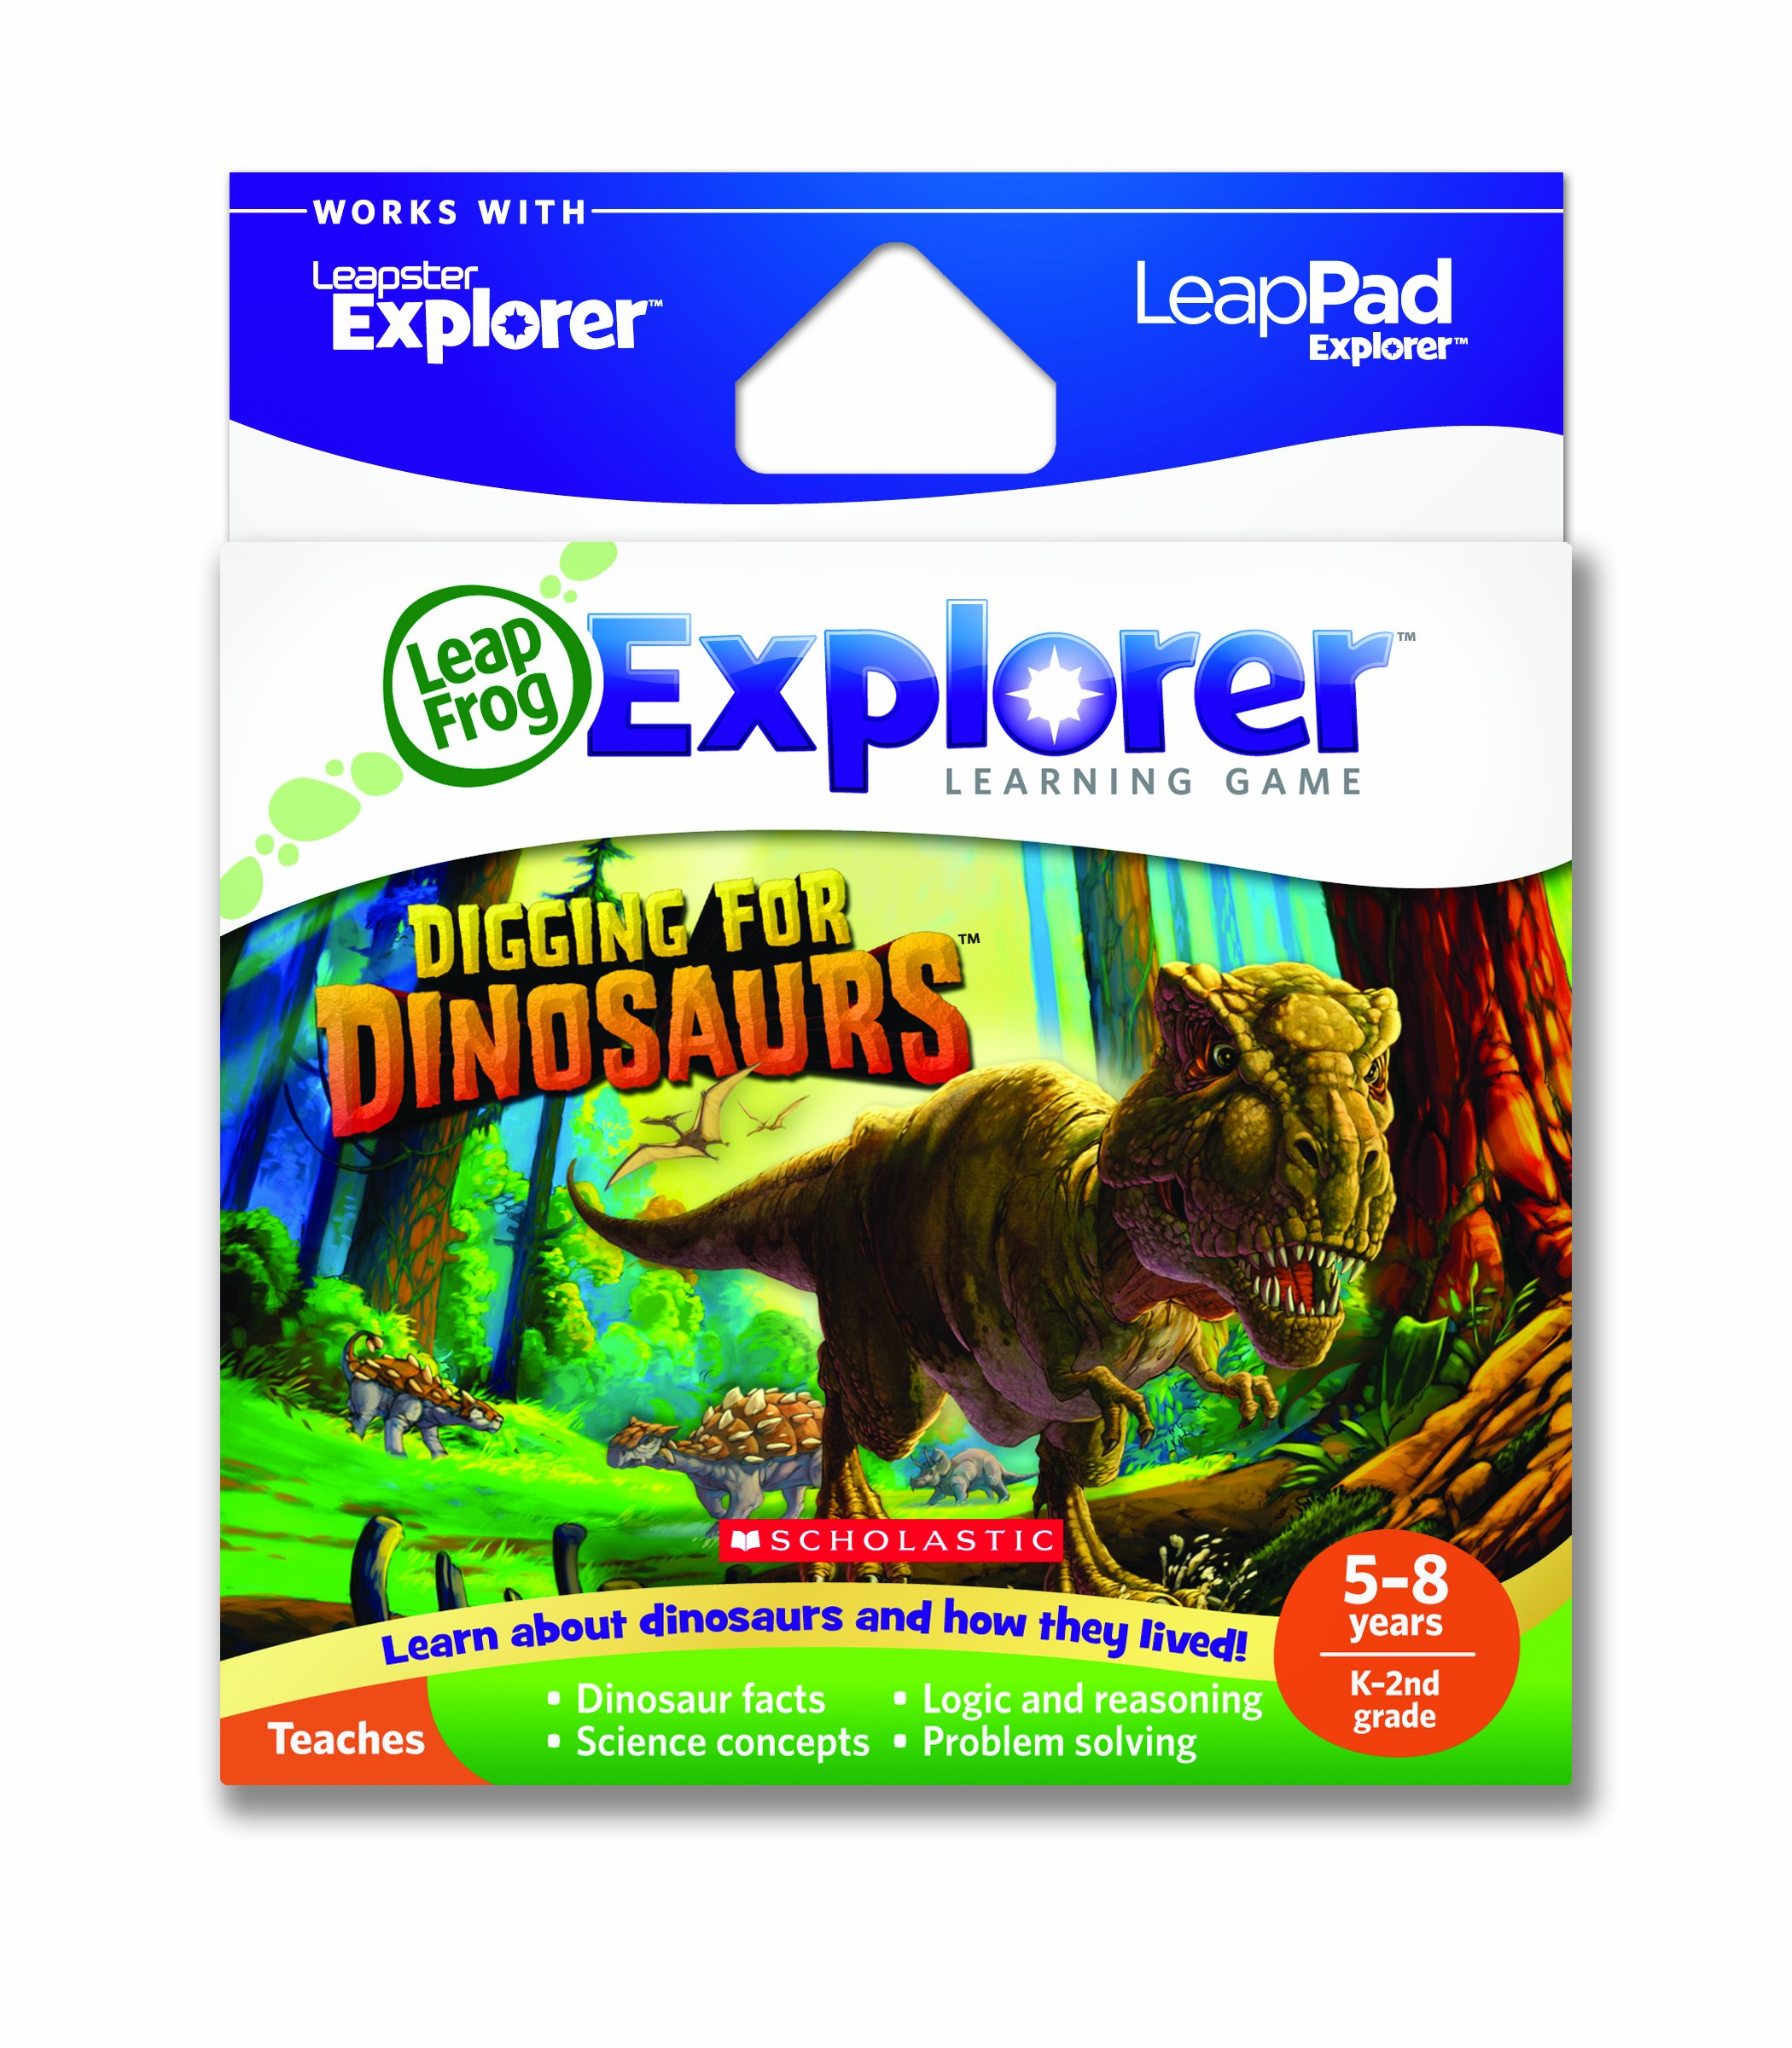 LeapFrog Explorer Learning Game: Digging for Dinosaurs (works with LeapPad & Leapster Explorer) by LeapFrog